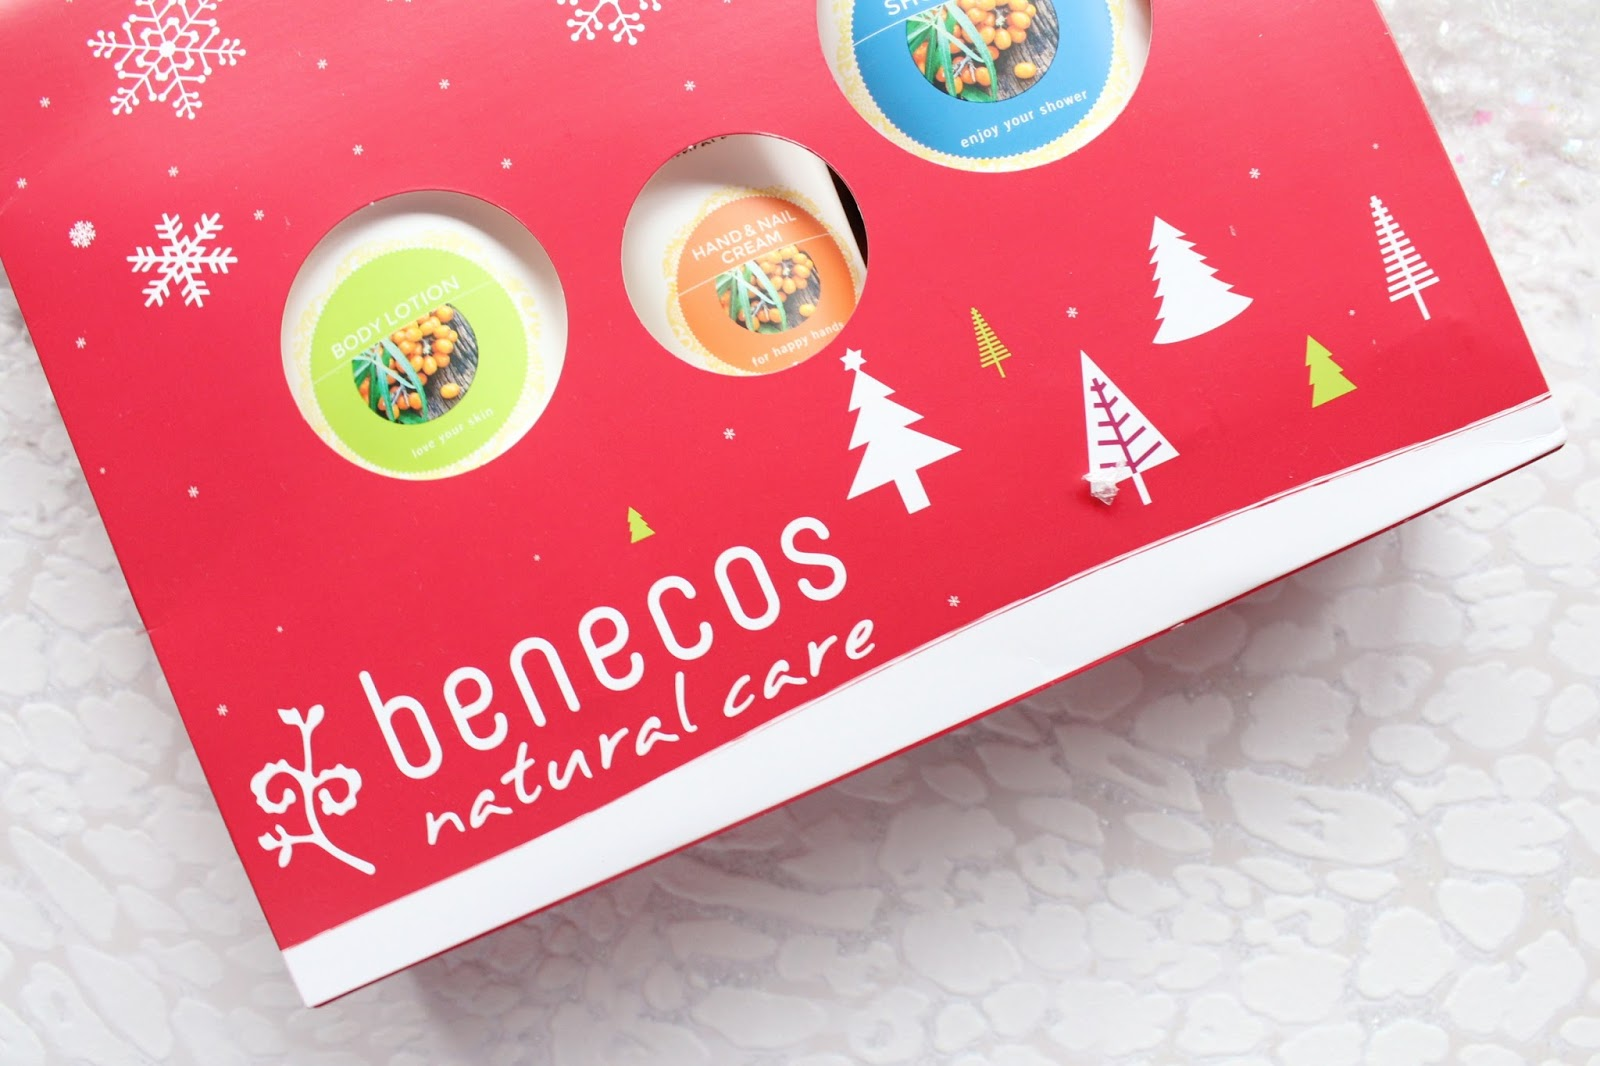 Benecos Orange and Sea Buckthorn Gift Set